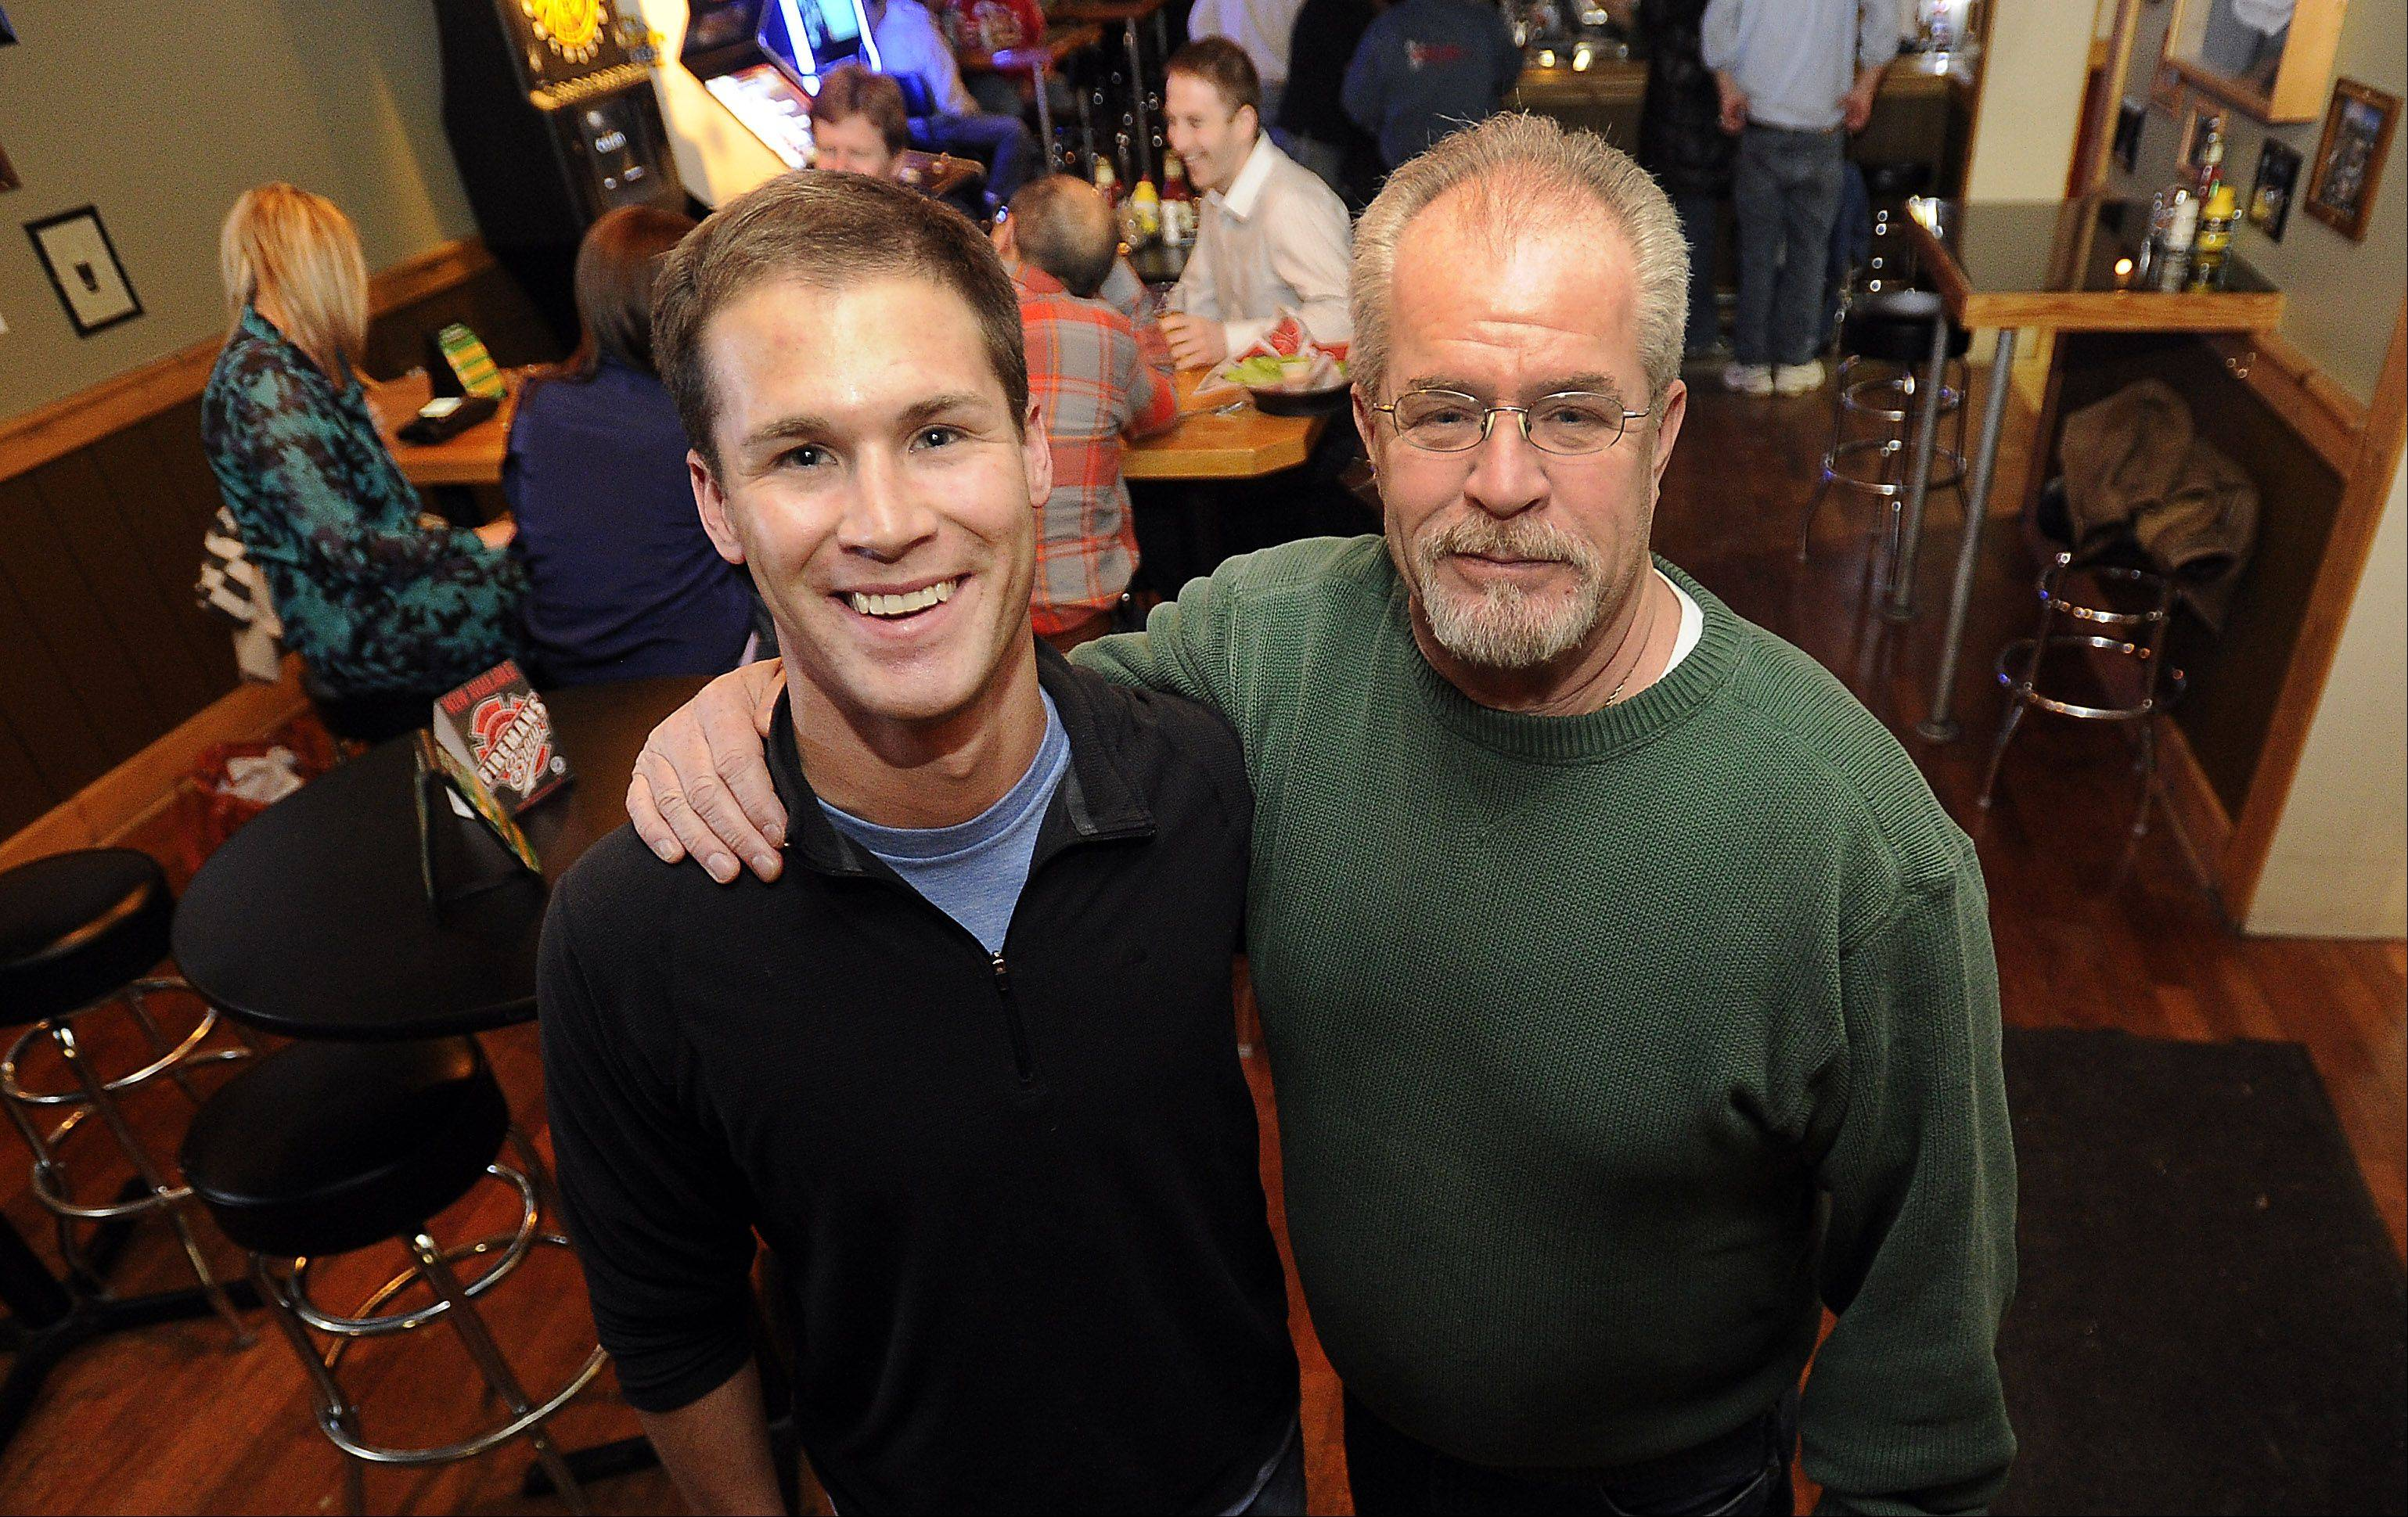 Owners Timothy O'Brien, right, and son James run TJ O'Brien's in downtown Palatine.